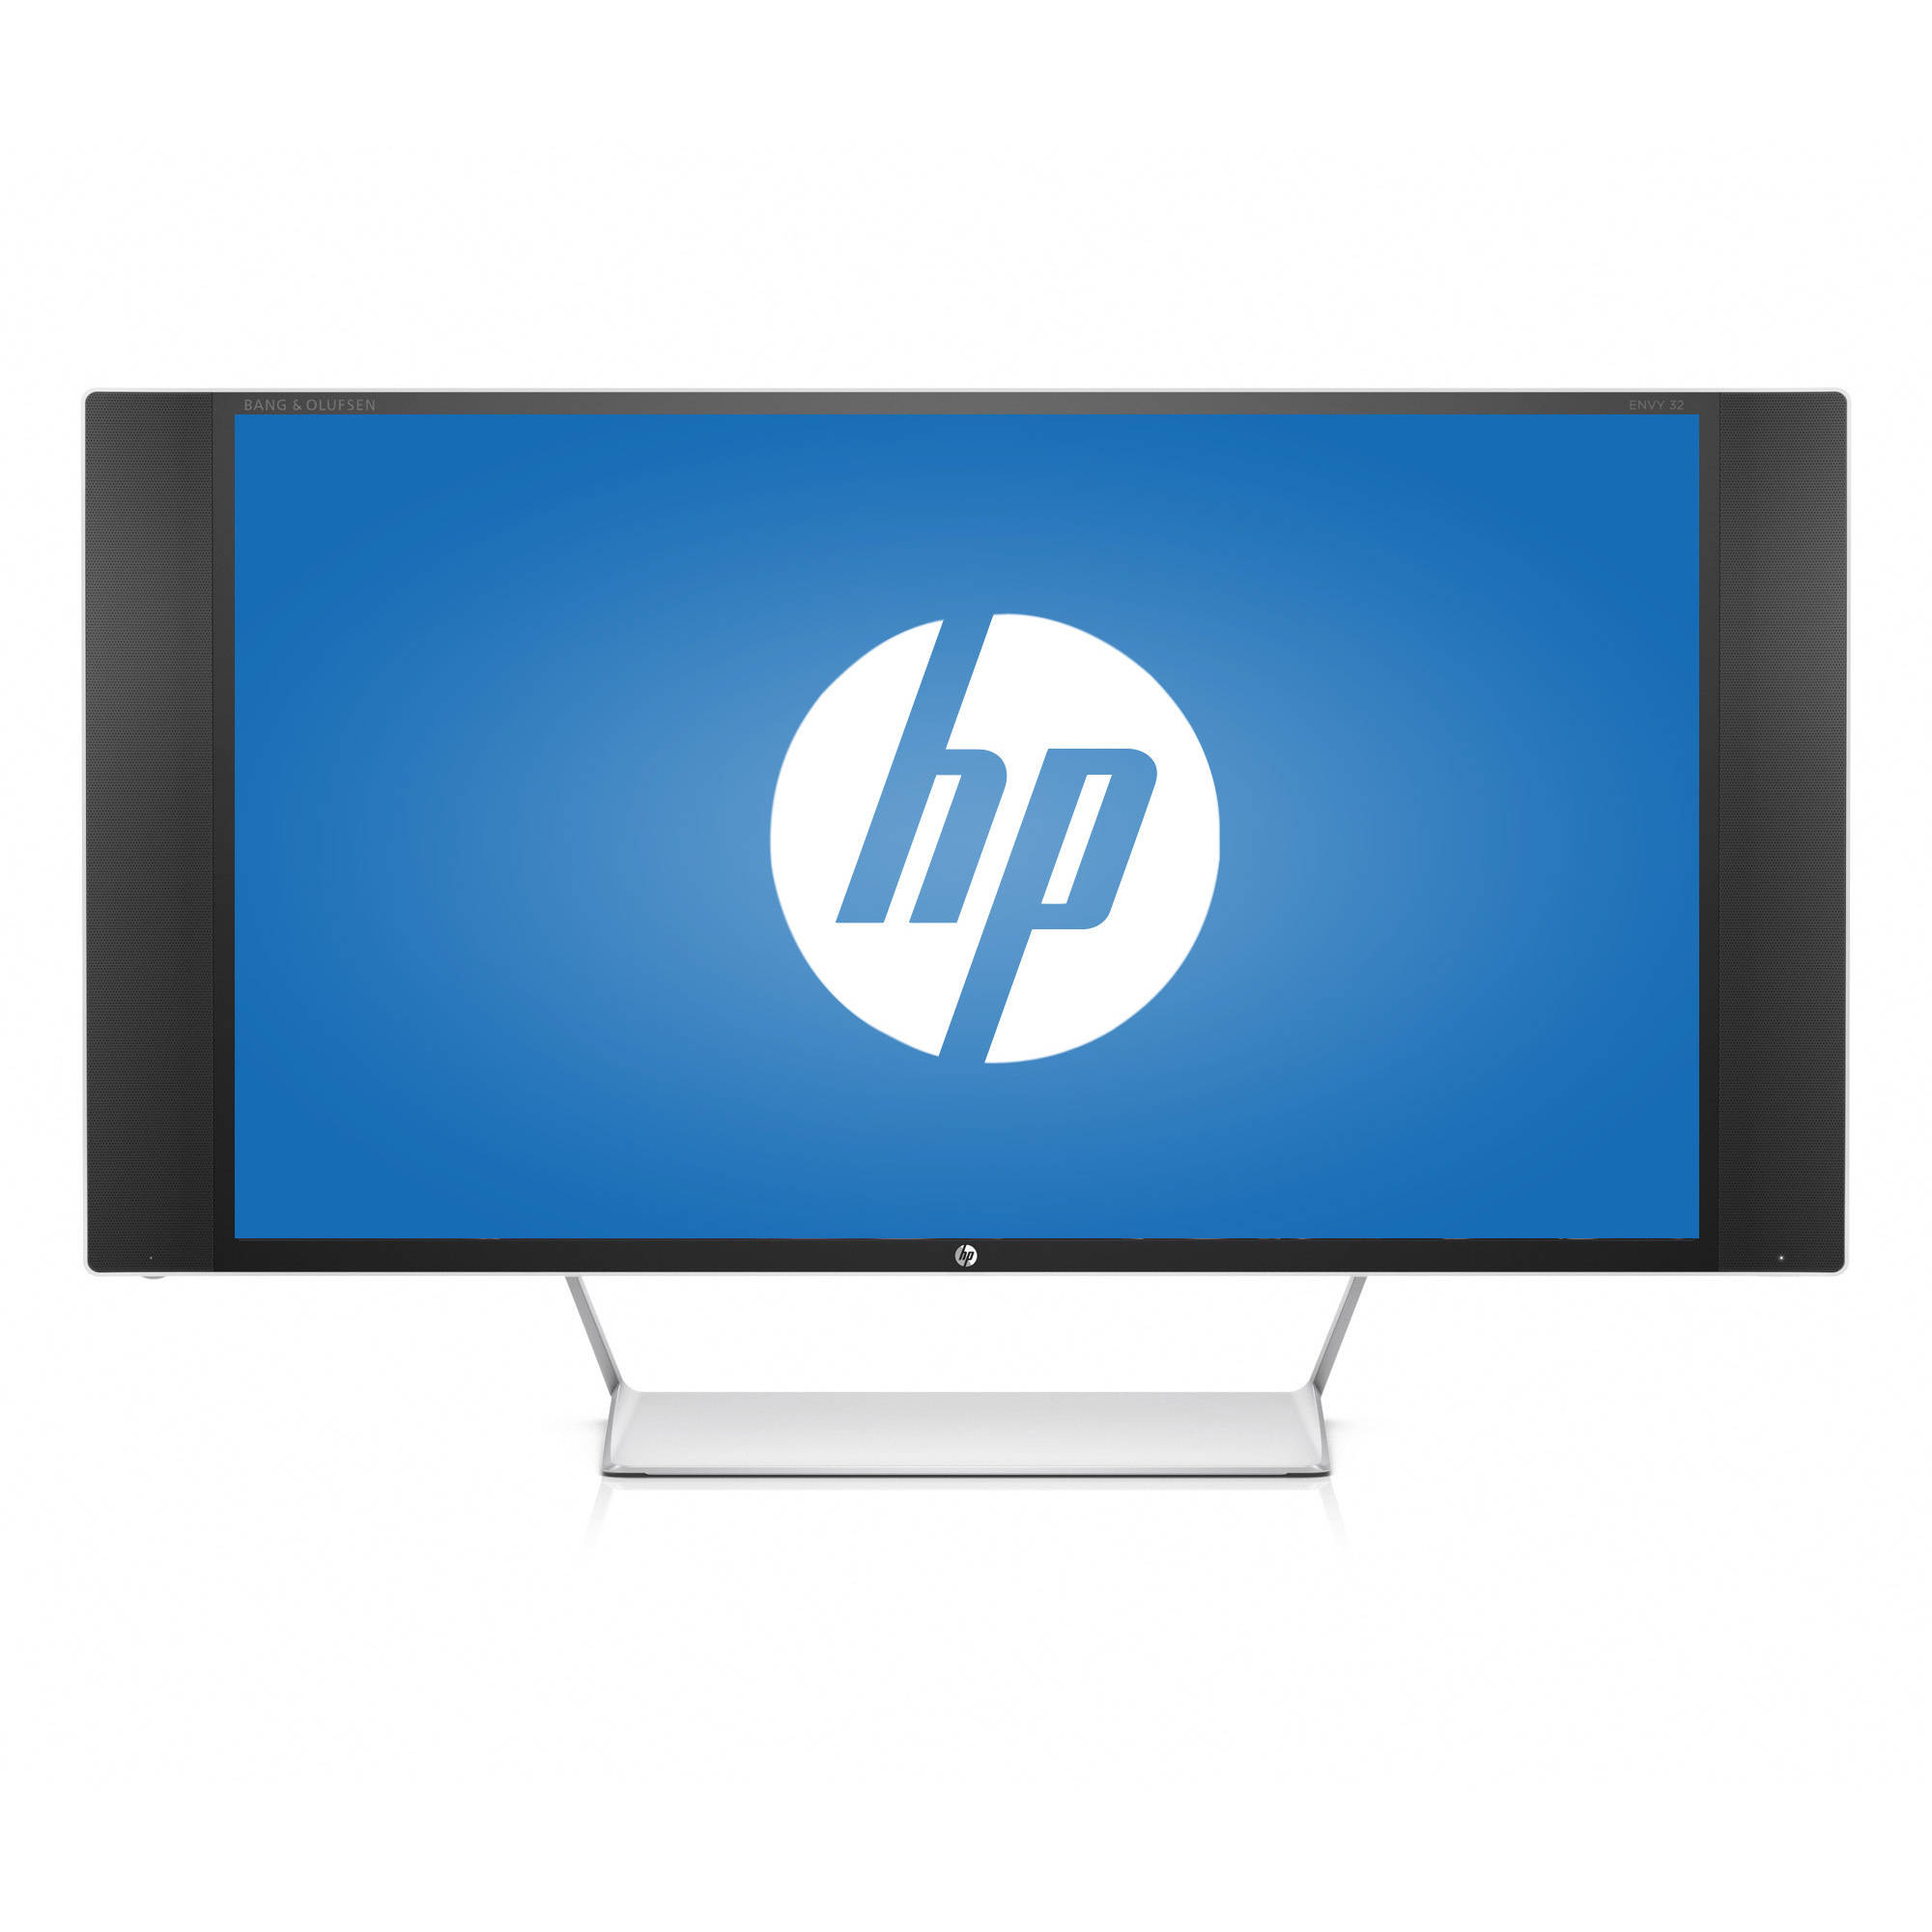 "HP Envy 32"" Widescreen Media Display with Audio by Bang and Olufsen (N9C43AA#ABA Black) by HP"